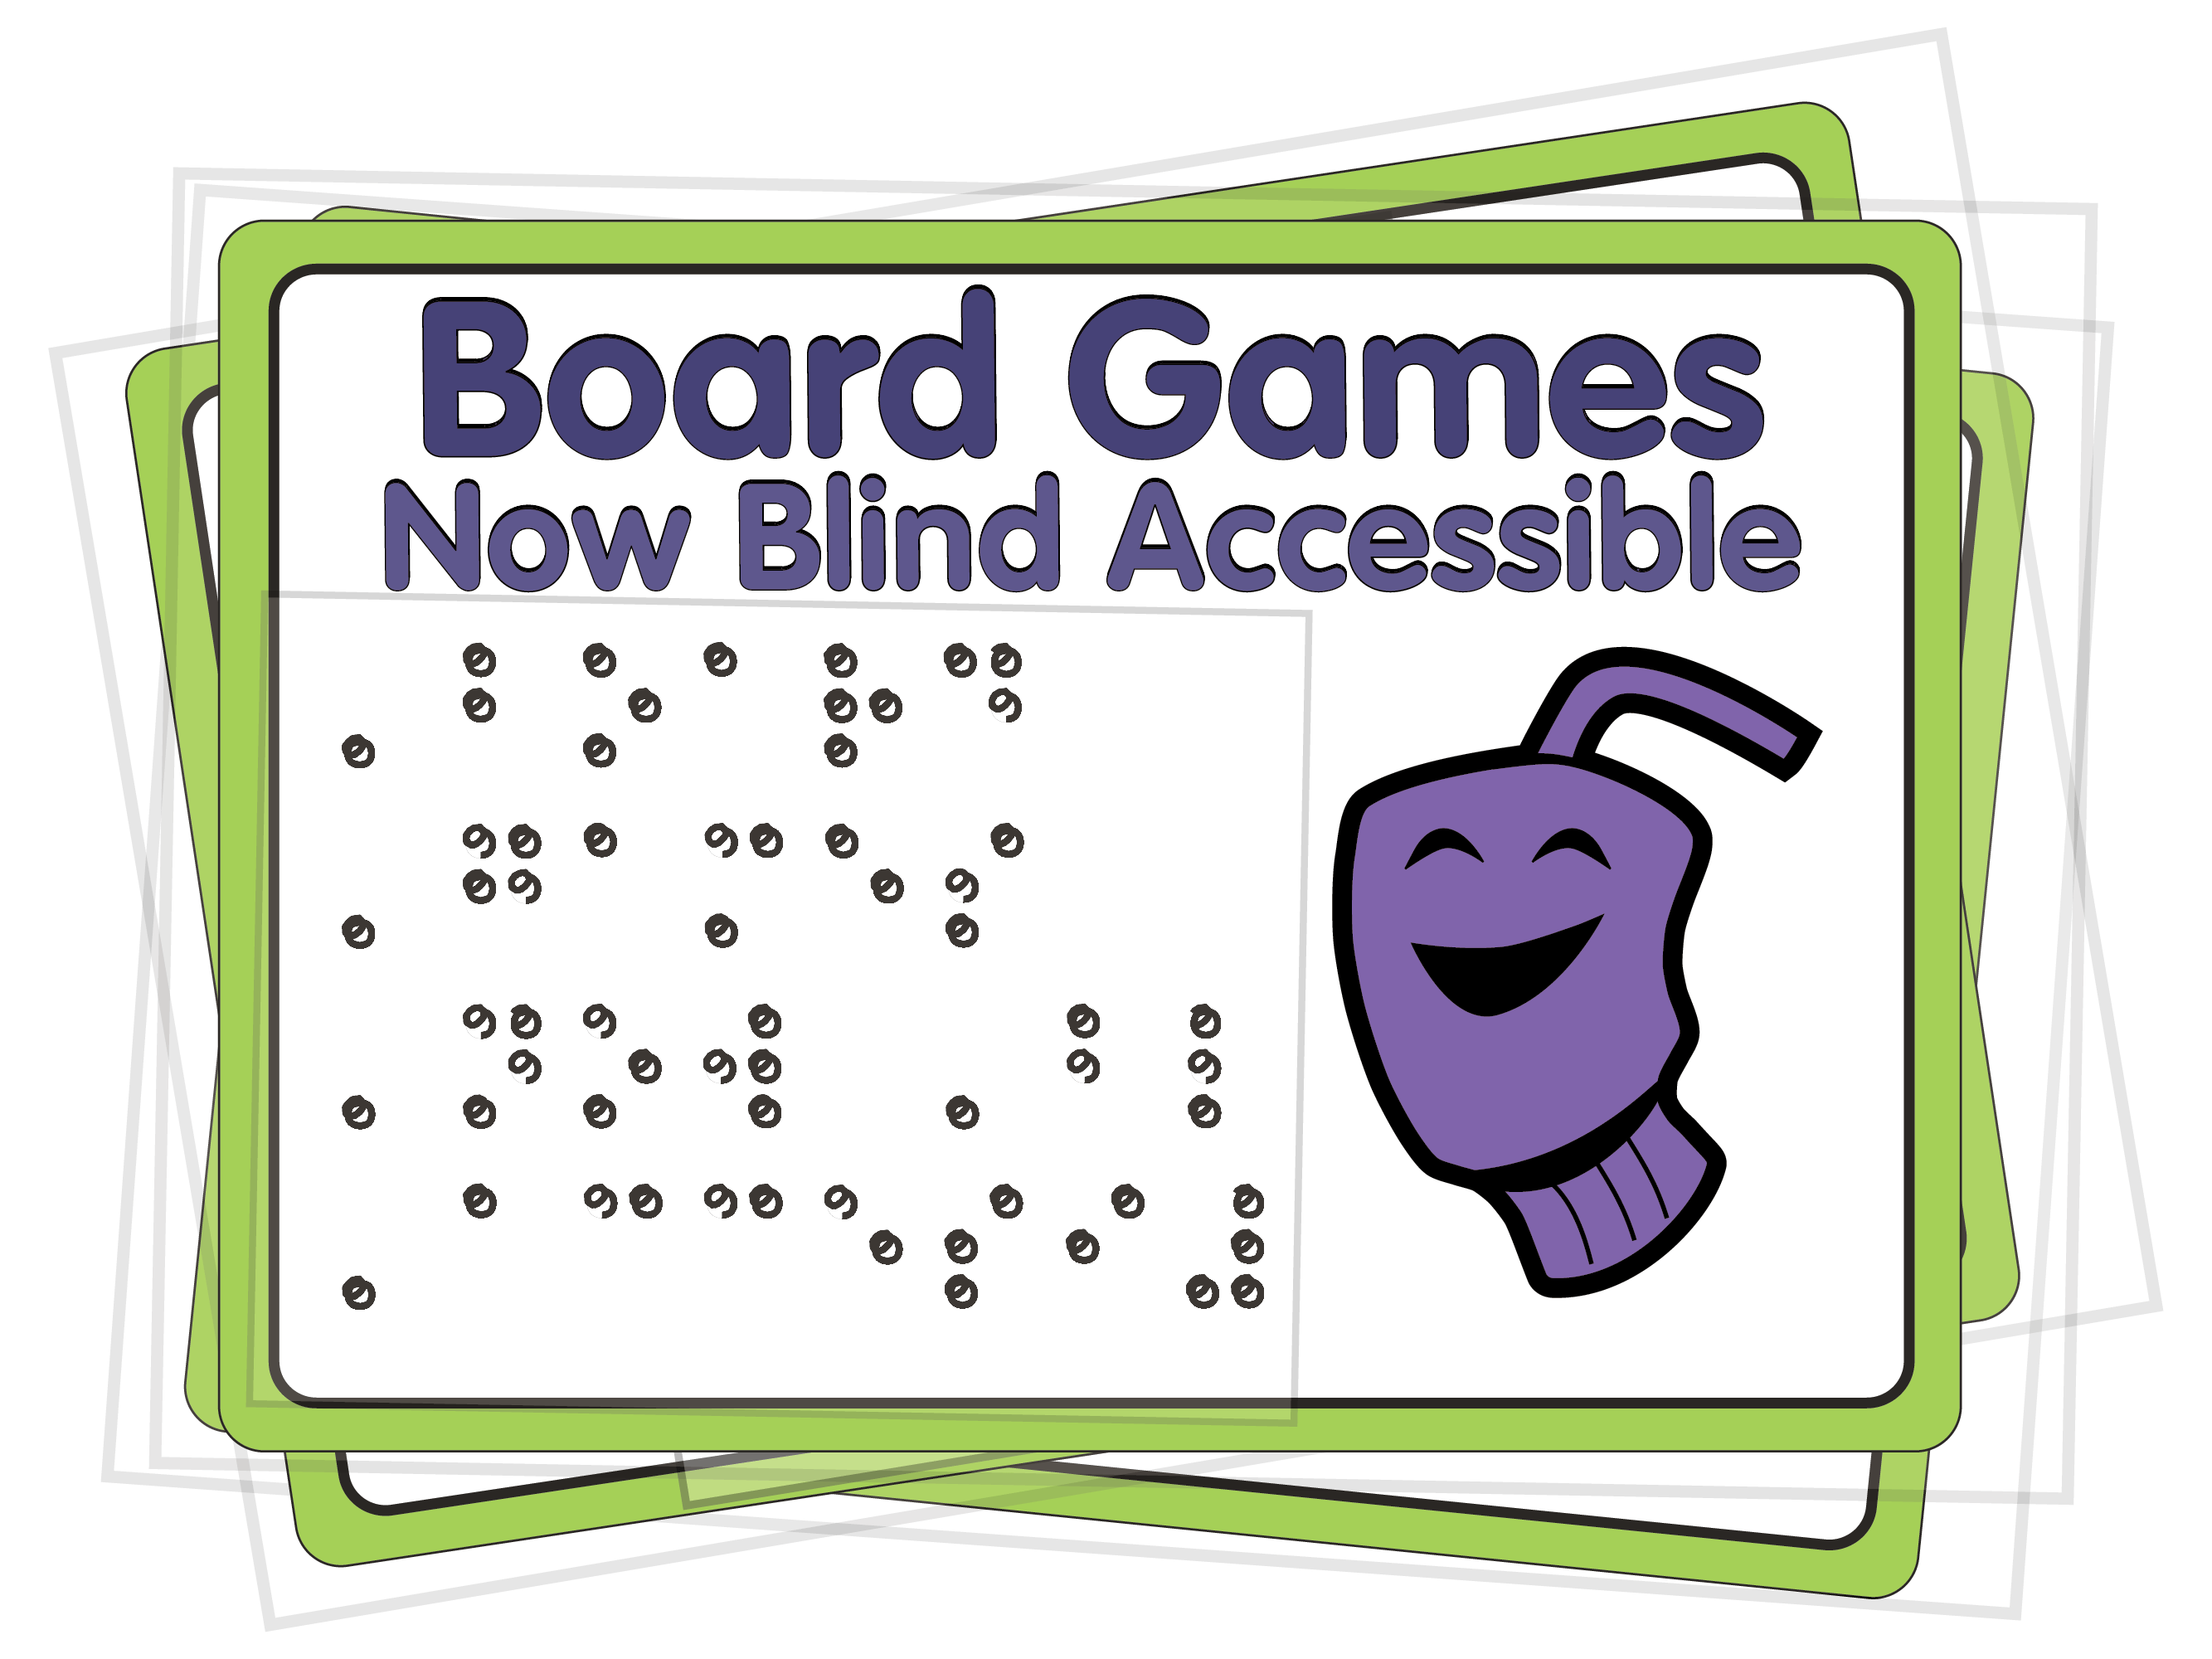 Board Games: Now Blind Accessible